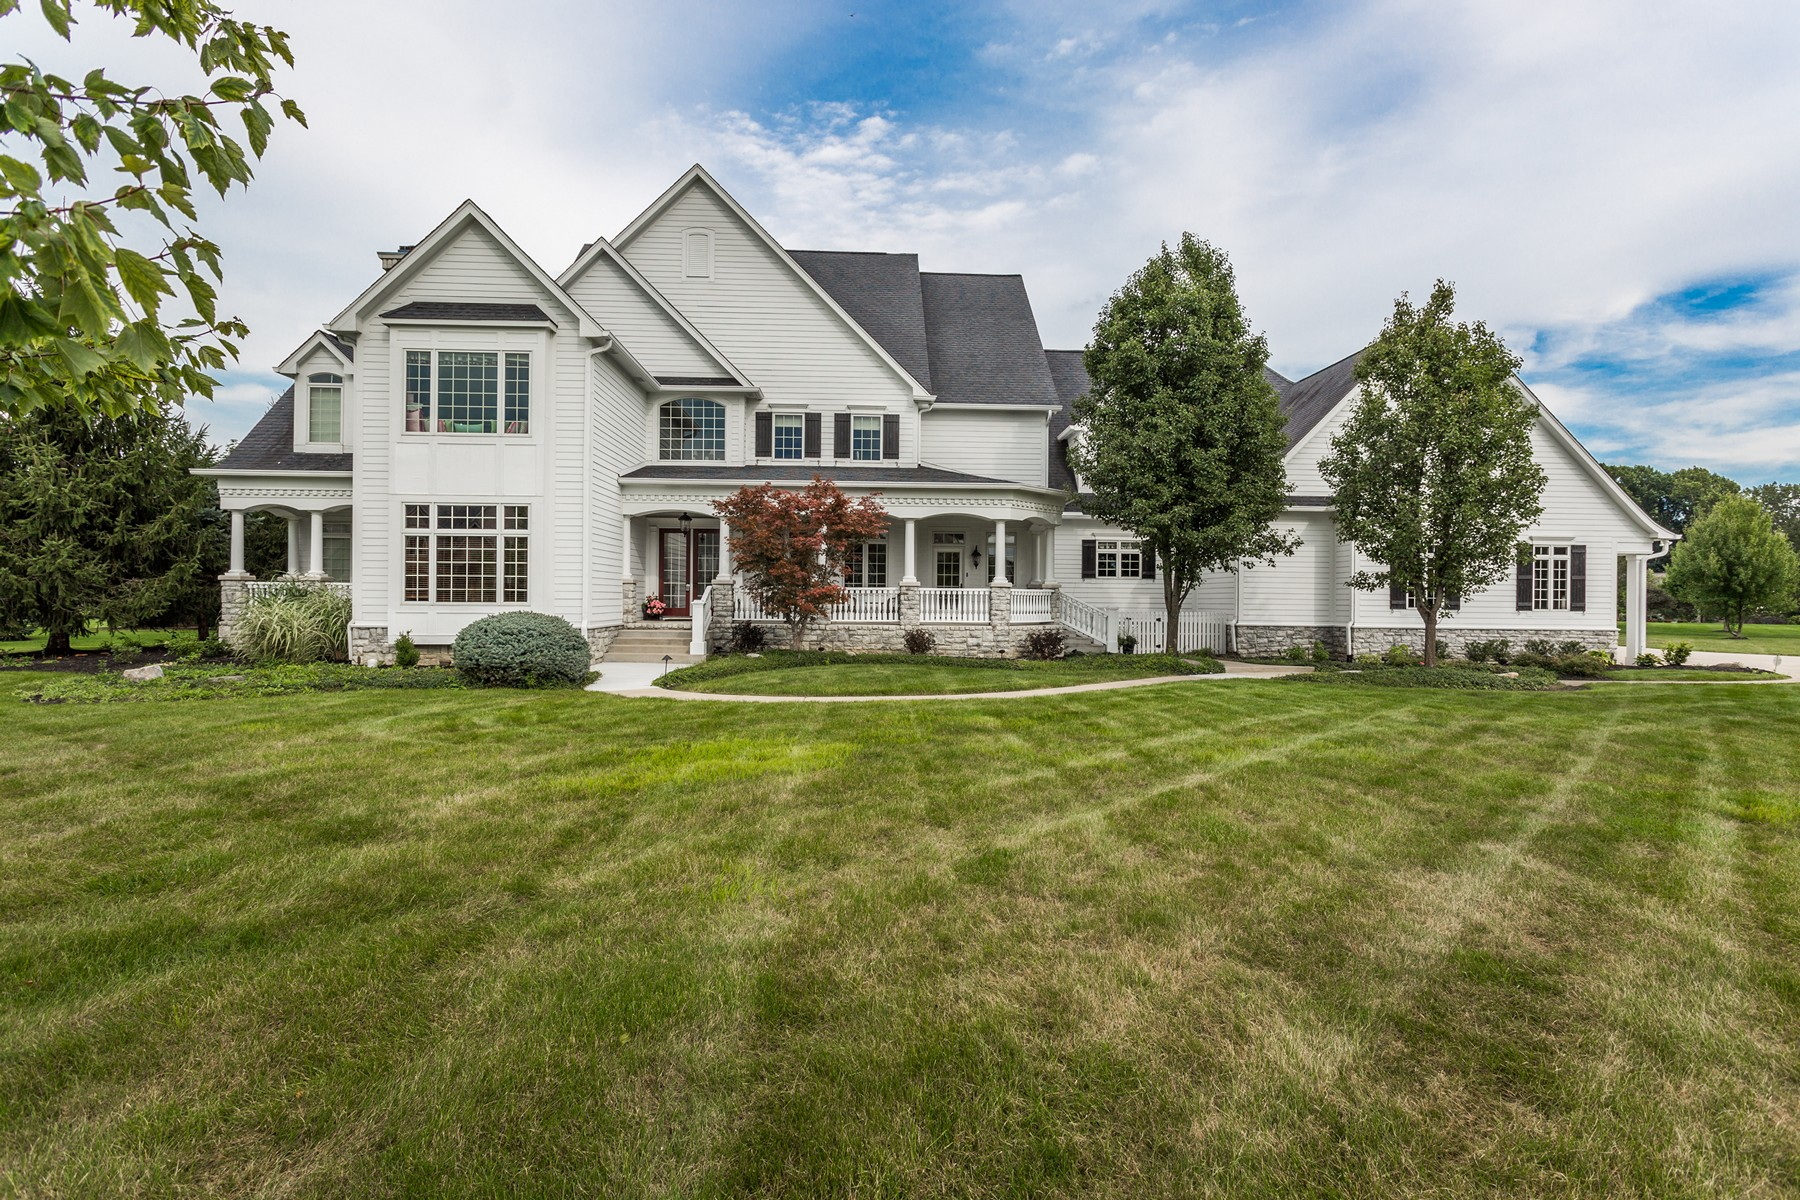 Single Family Home for Sale at Extraordinary Zionsville Estate in Willow Ridge 11527 Willow Ridge Drive Zionsville, Indiana 46077 United States